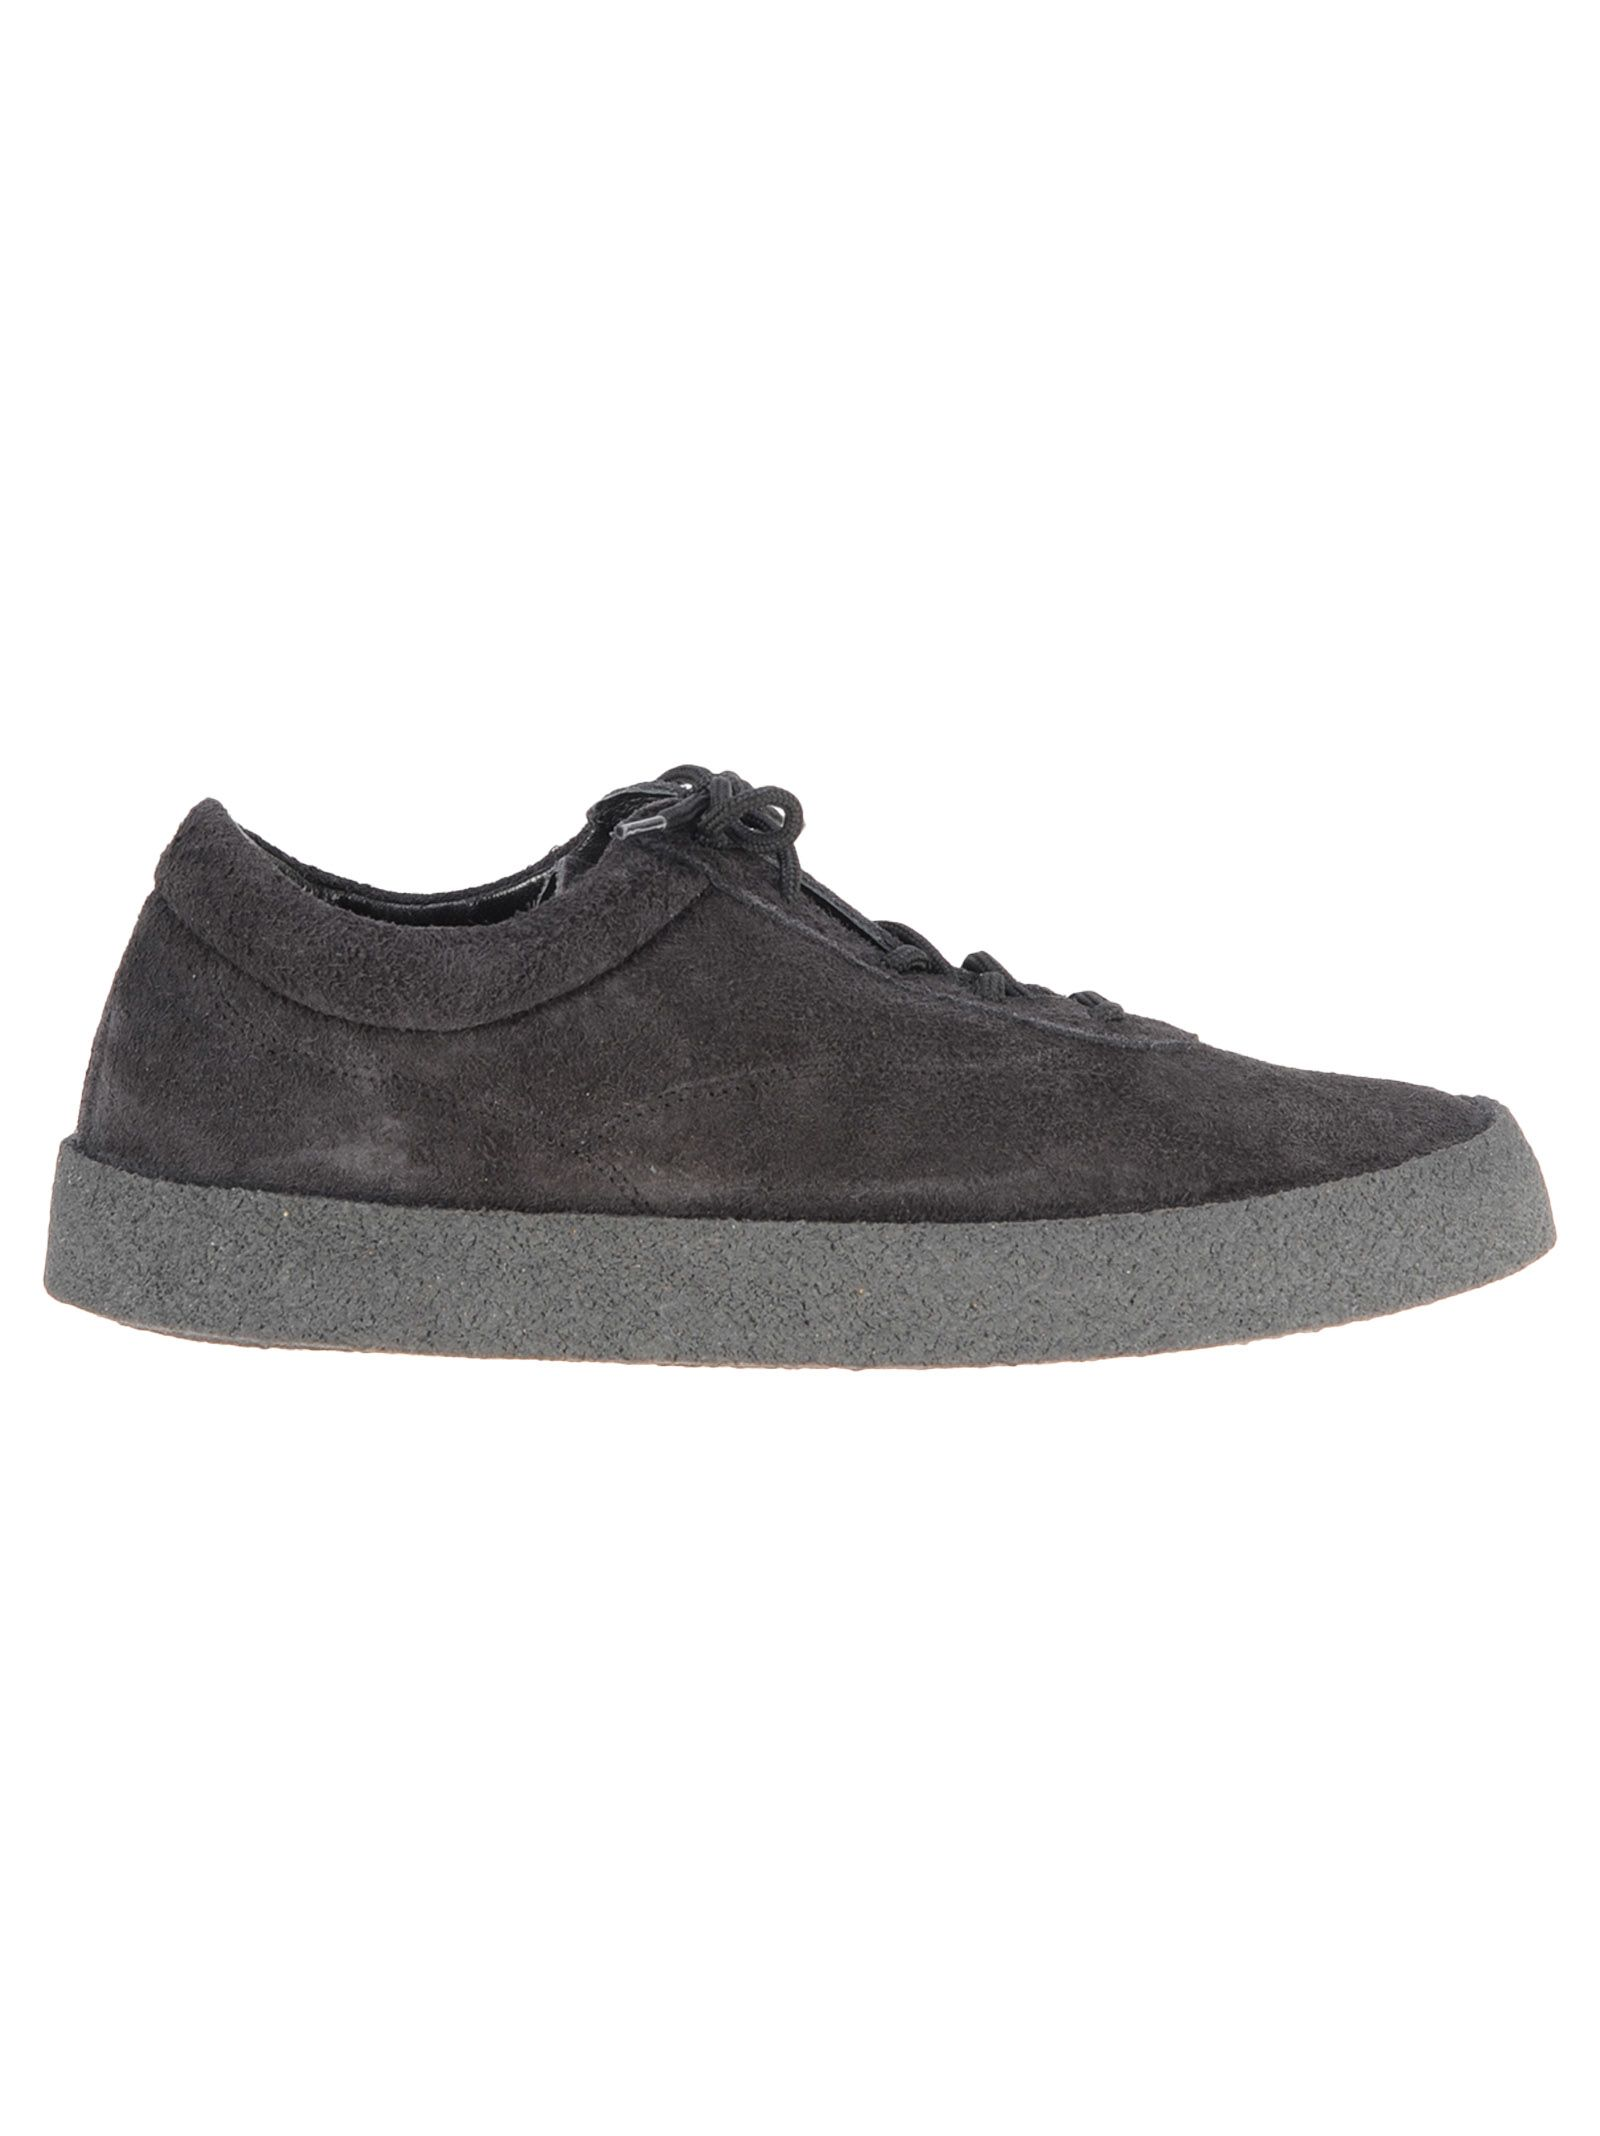 Yeezy Kanye Homme Rampantes Ouest 5yPdQ